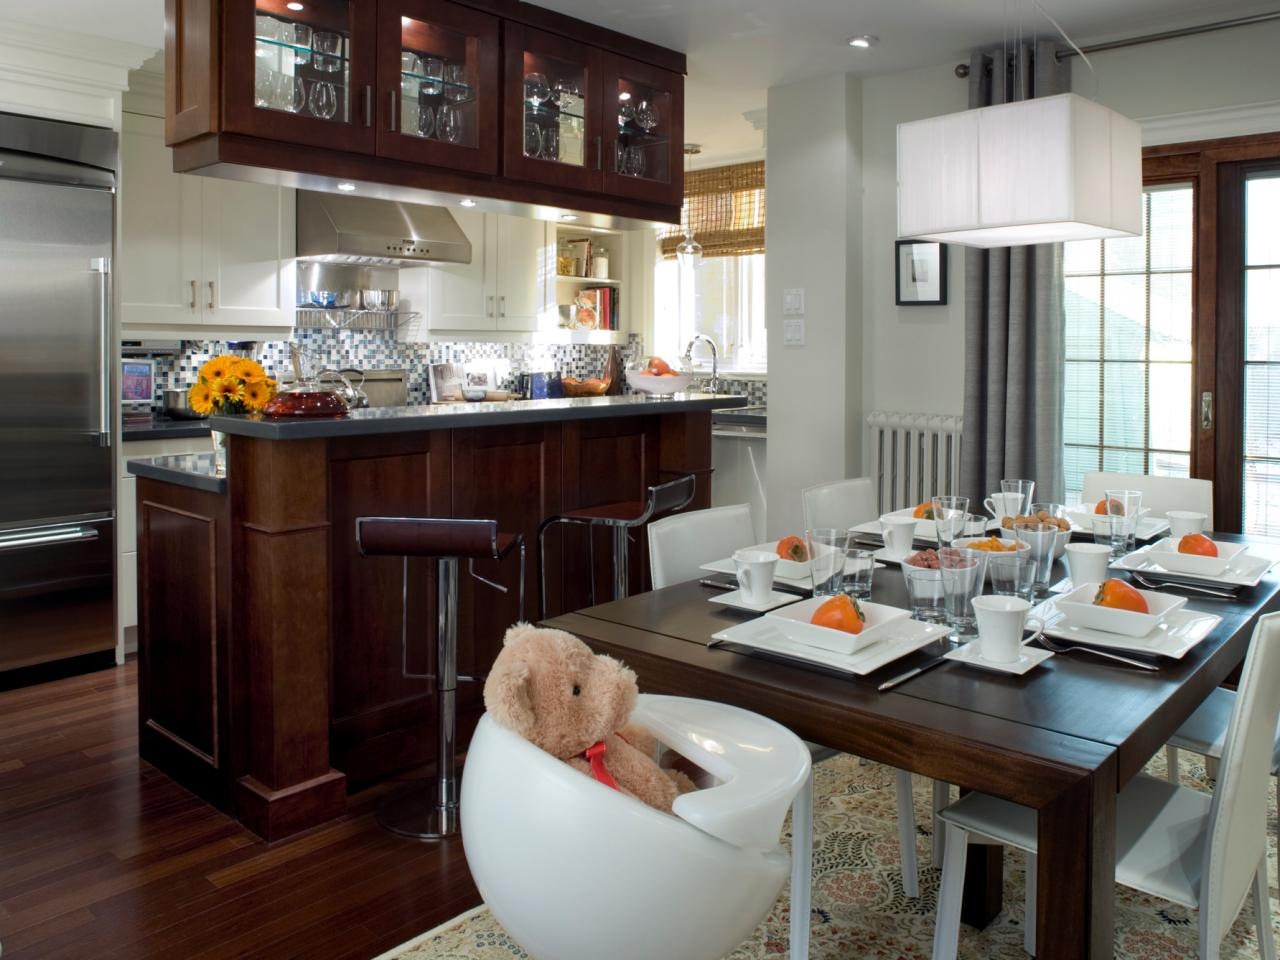 candice olson kitchen design tips photo - 10